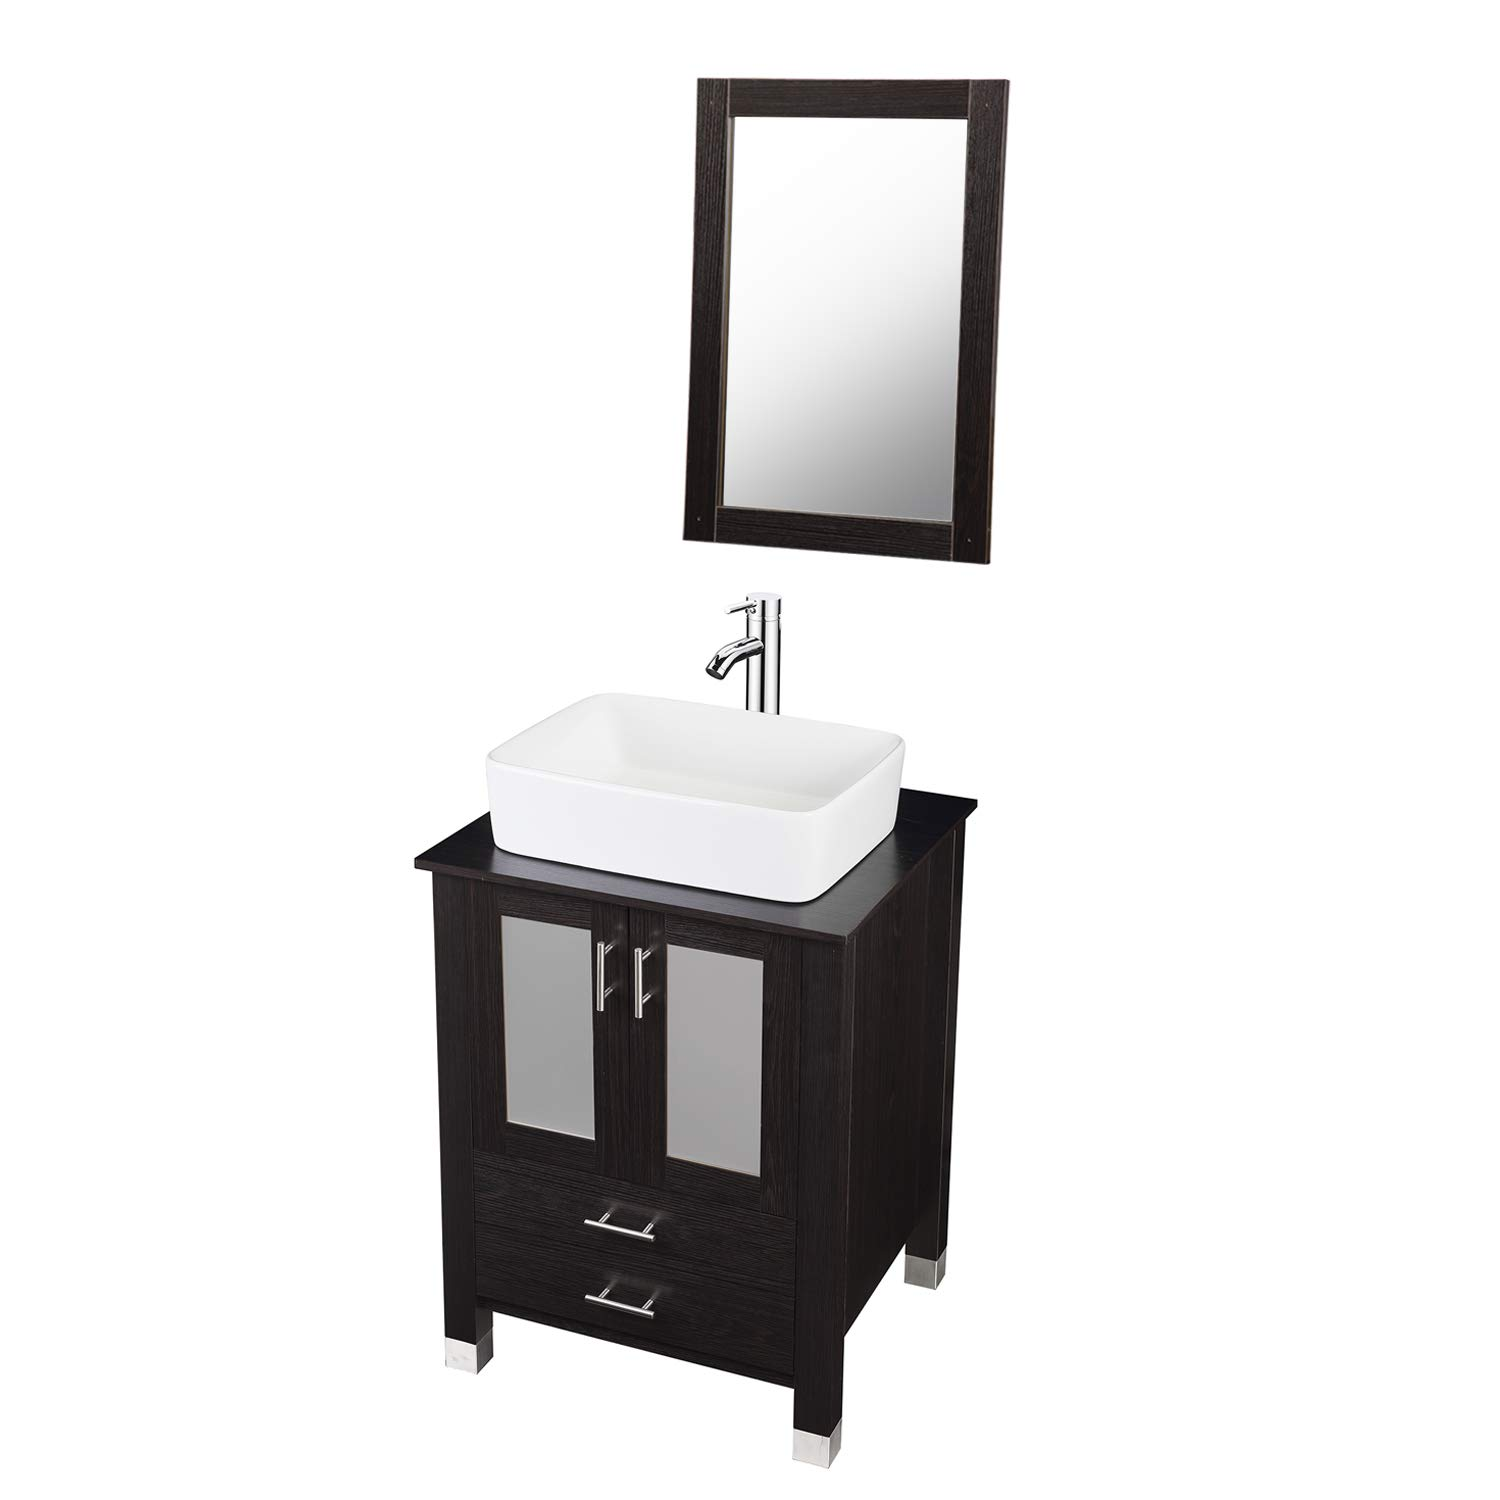 DOIT 24 inch Modern Bathroom Vanity and Sink Combo Stand Cabinet Bowl White Ceramic Sink Single Bathroom Vanity with Top and Mirror